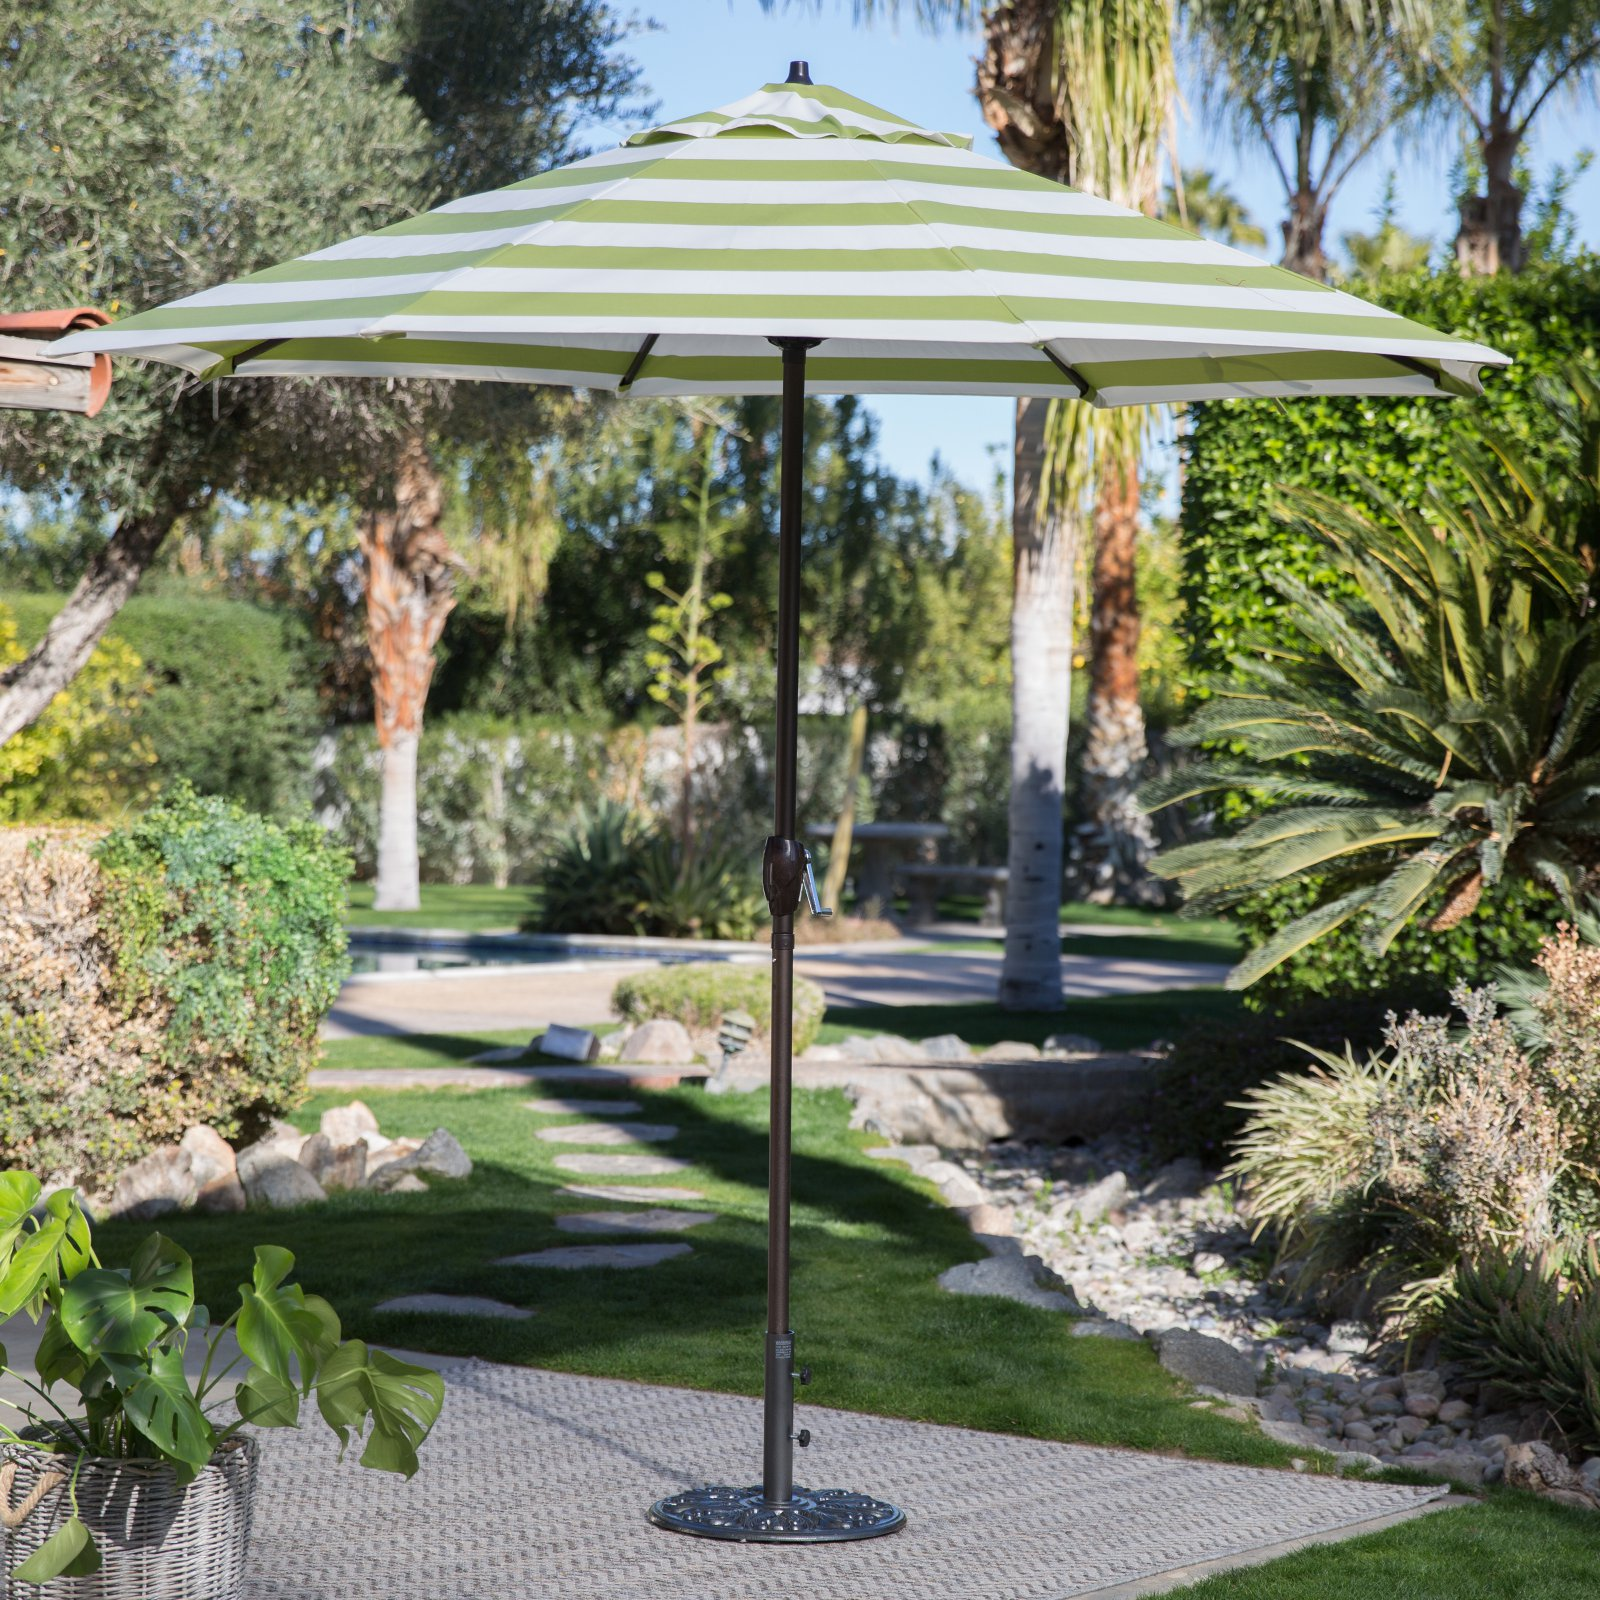 Coral Coast 9-ft. Olefin Fashion Patio Umbrella with Crank and Tilt by California Umbrella Inc